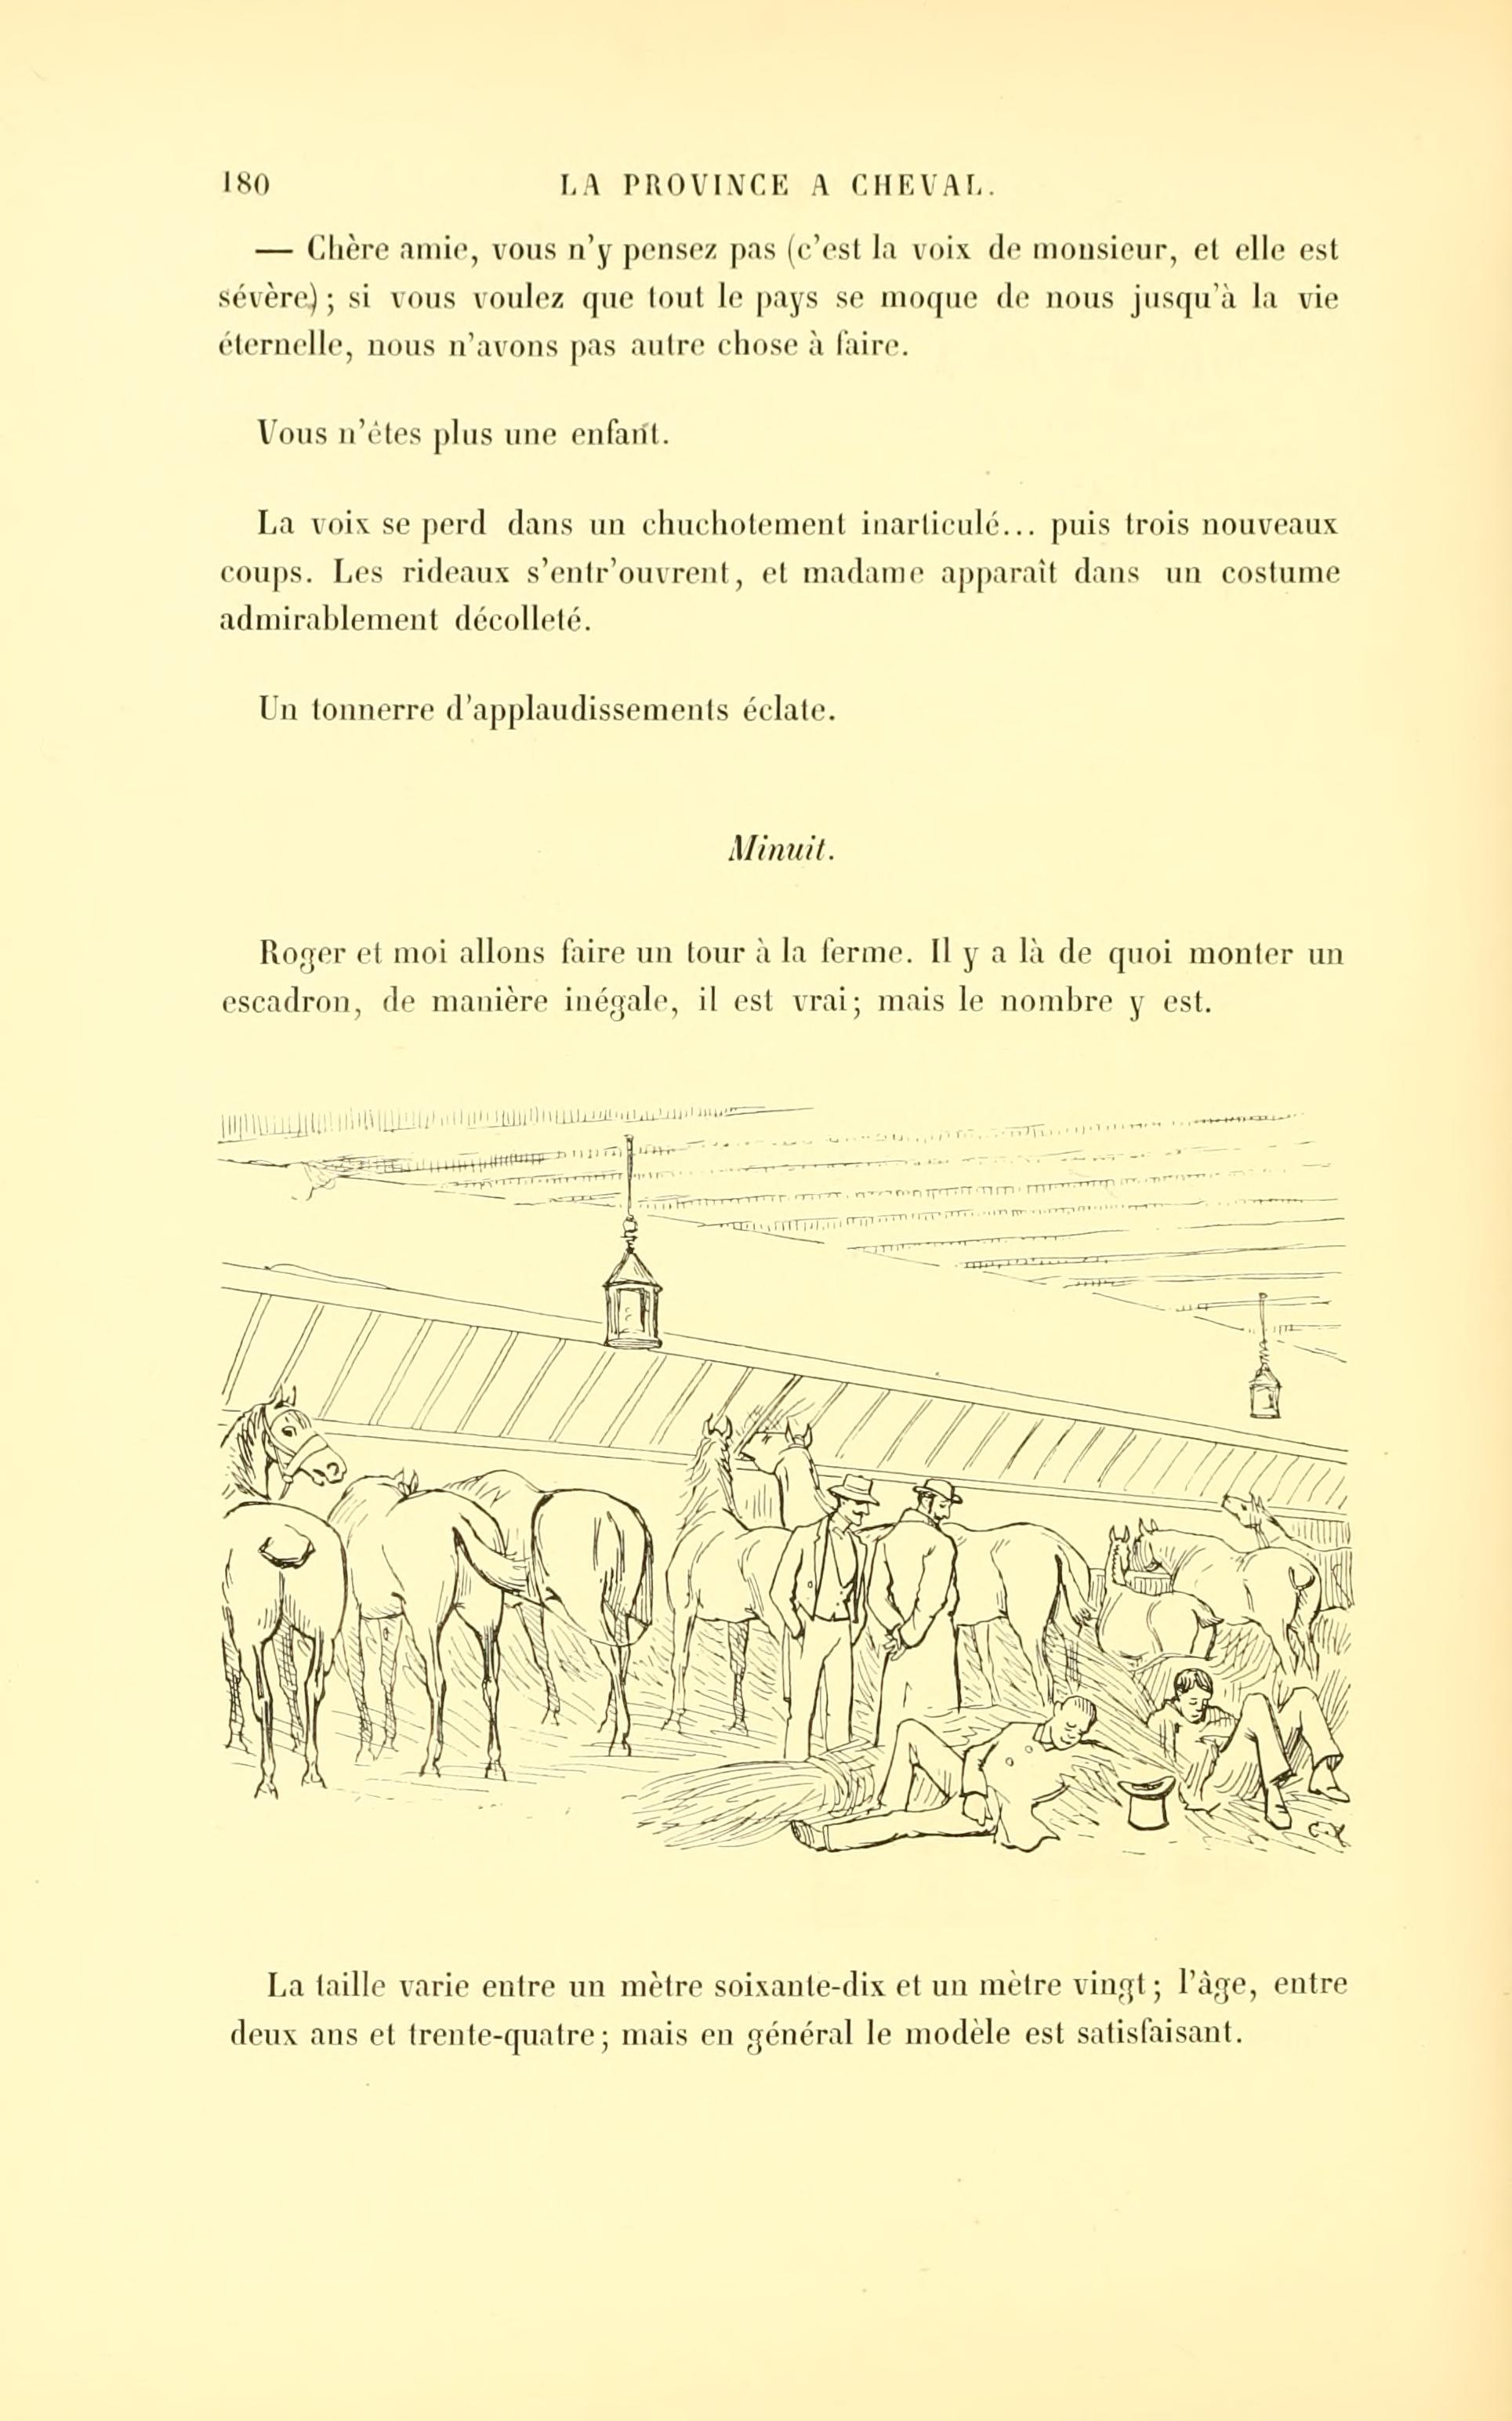 File:La province a cheval (Page 180) BHL20365081.jpg - Wikimedia Commons